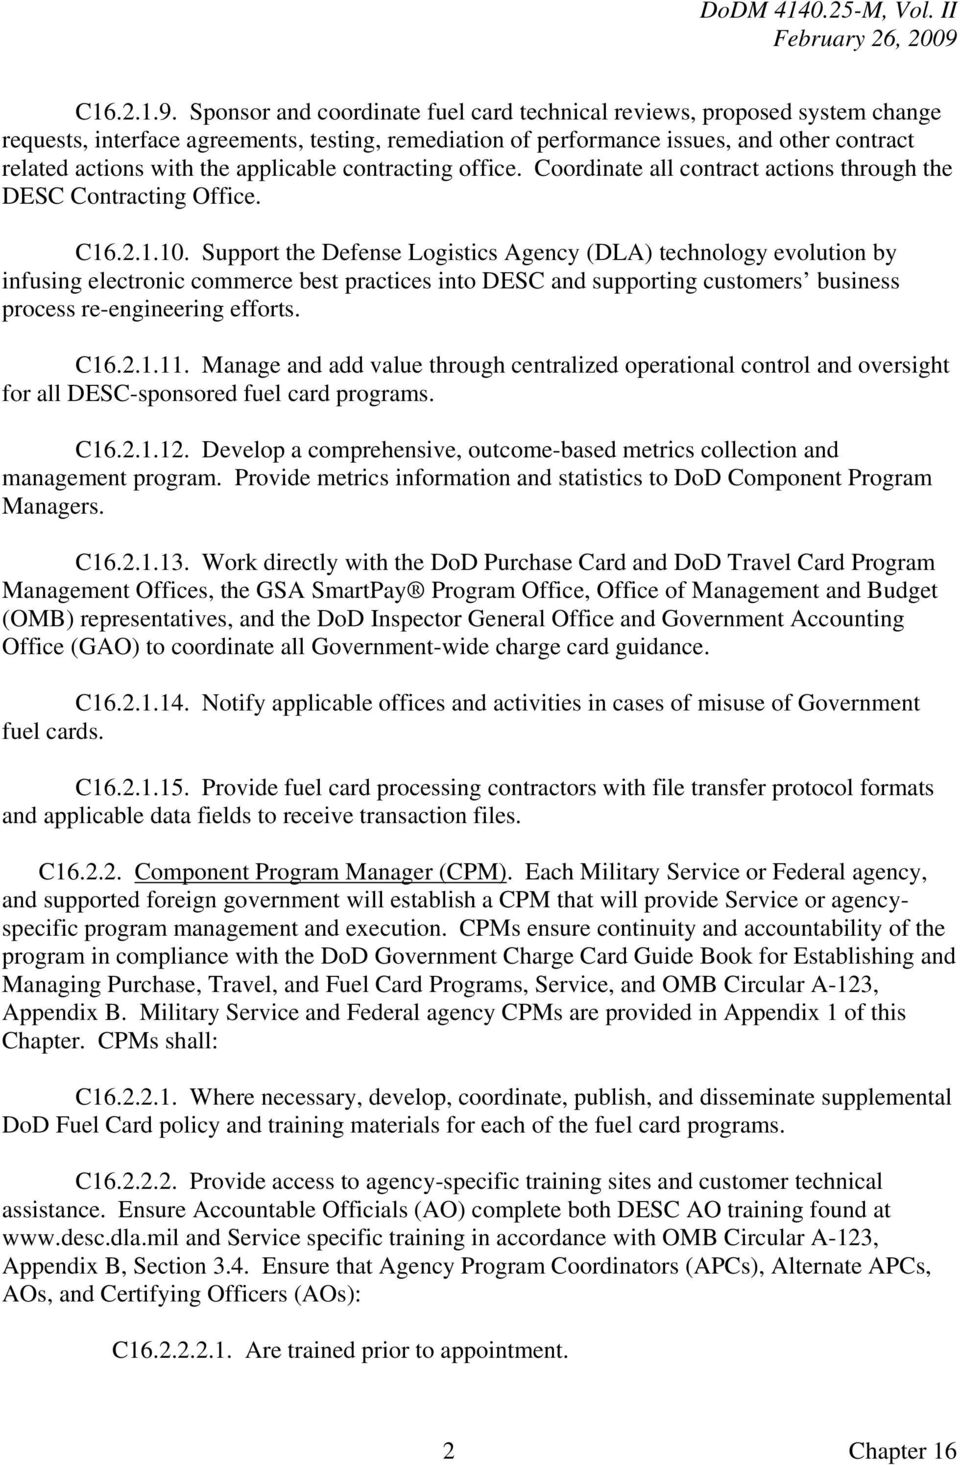 Government fuel card program management office dod fleet card air applicable contracting office coordinate all contract actions through the desc contracting office c16 reheart Choice Image